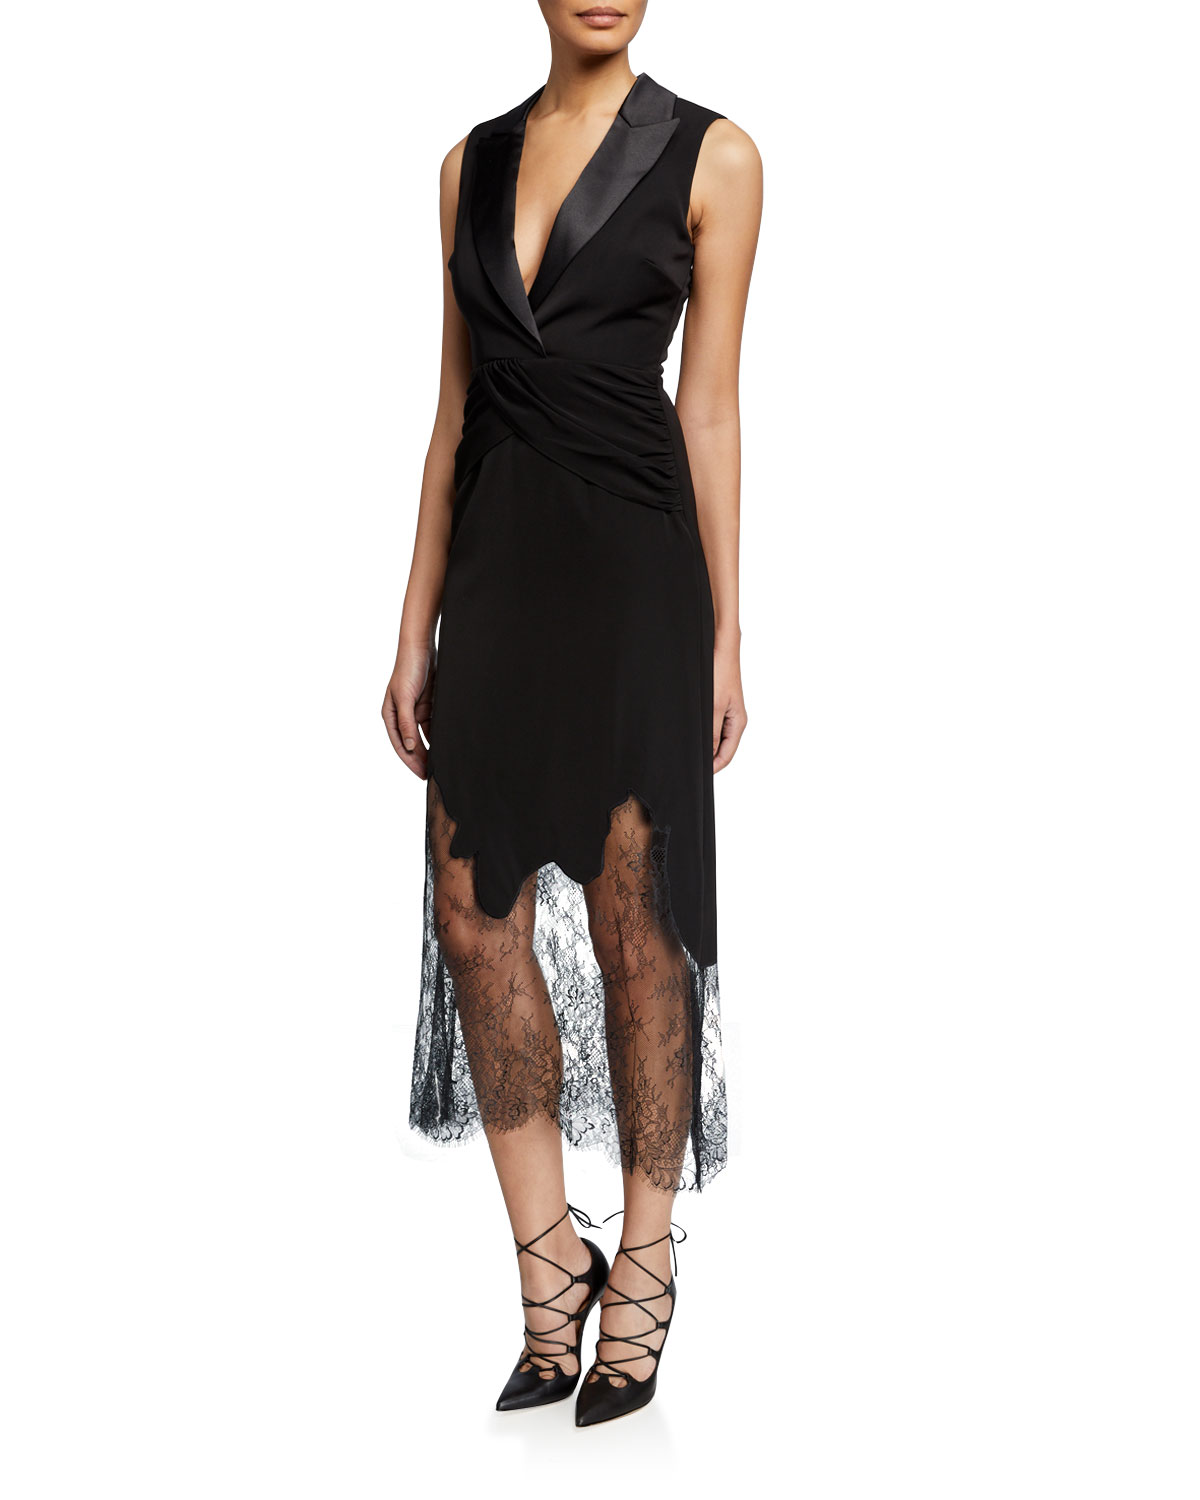 Sleeveless Tailored Cocktail Dress With Lace by Self Portrait